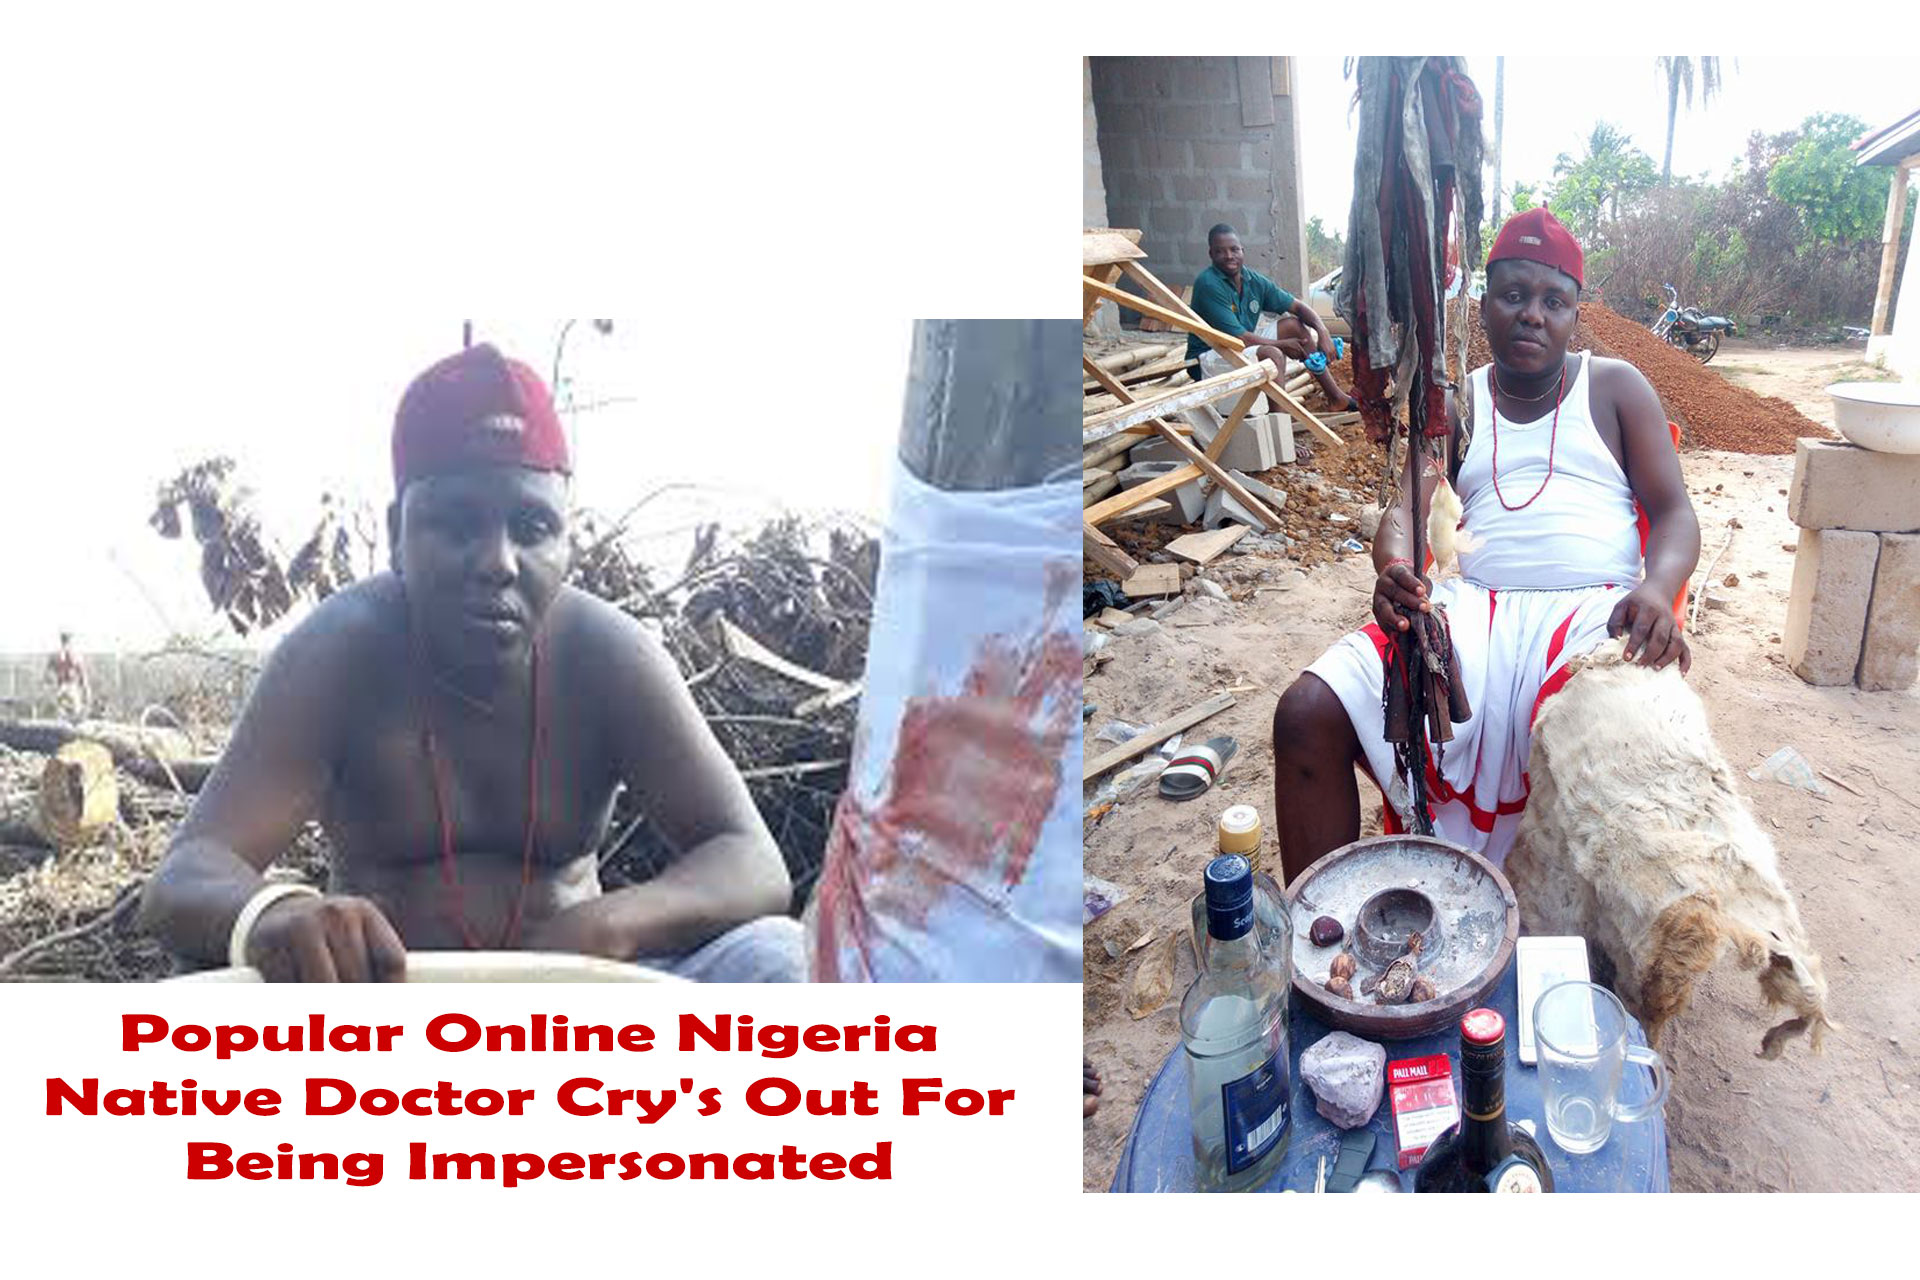 Nigeria-Native-Doctor-Crys-Out